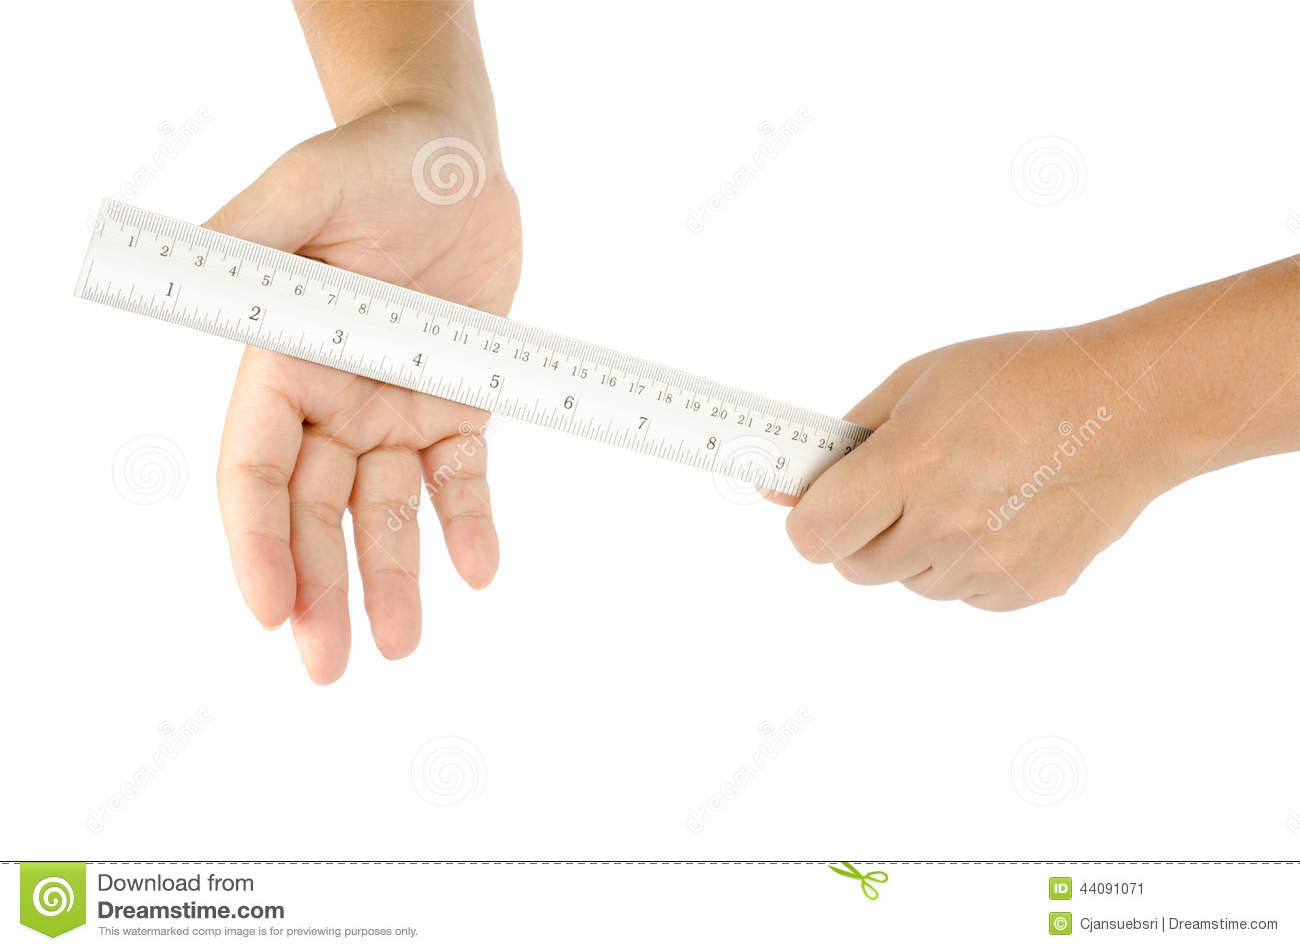 Hand Hold Ruler Hit Another Hand Stock Photo - Image: 44091071